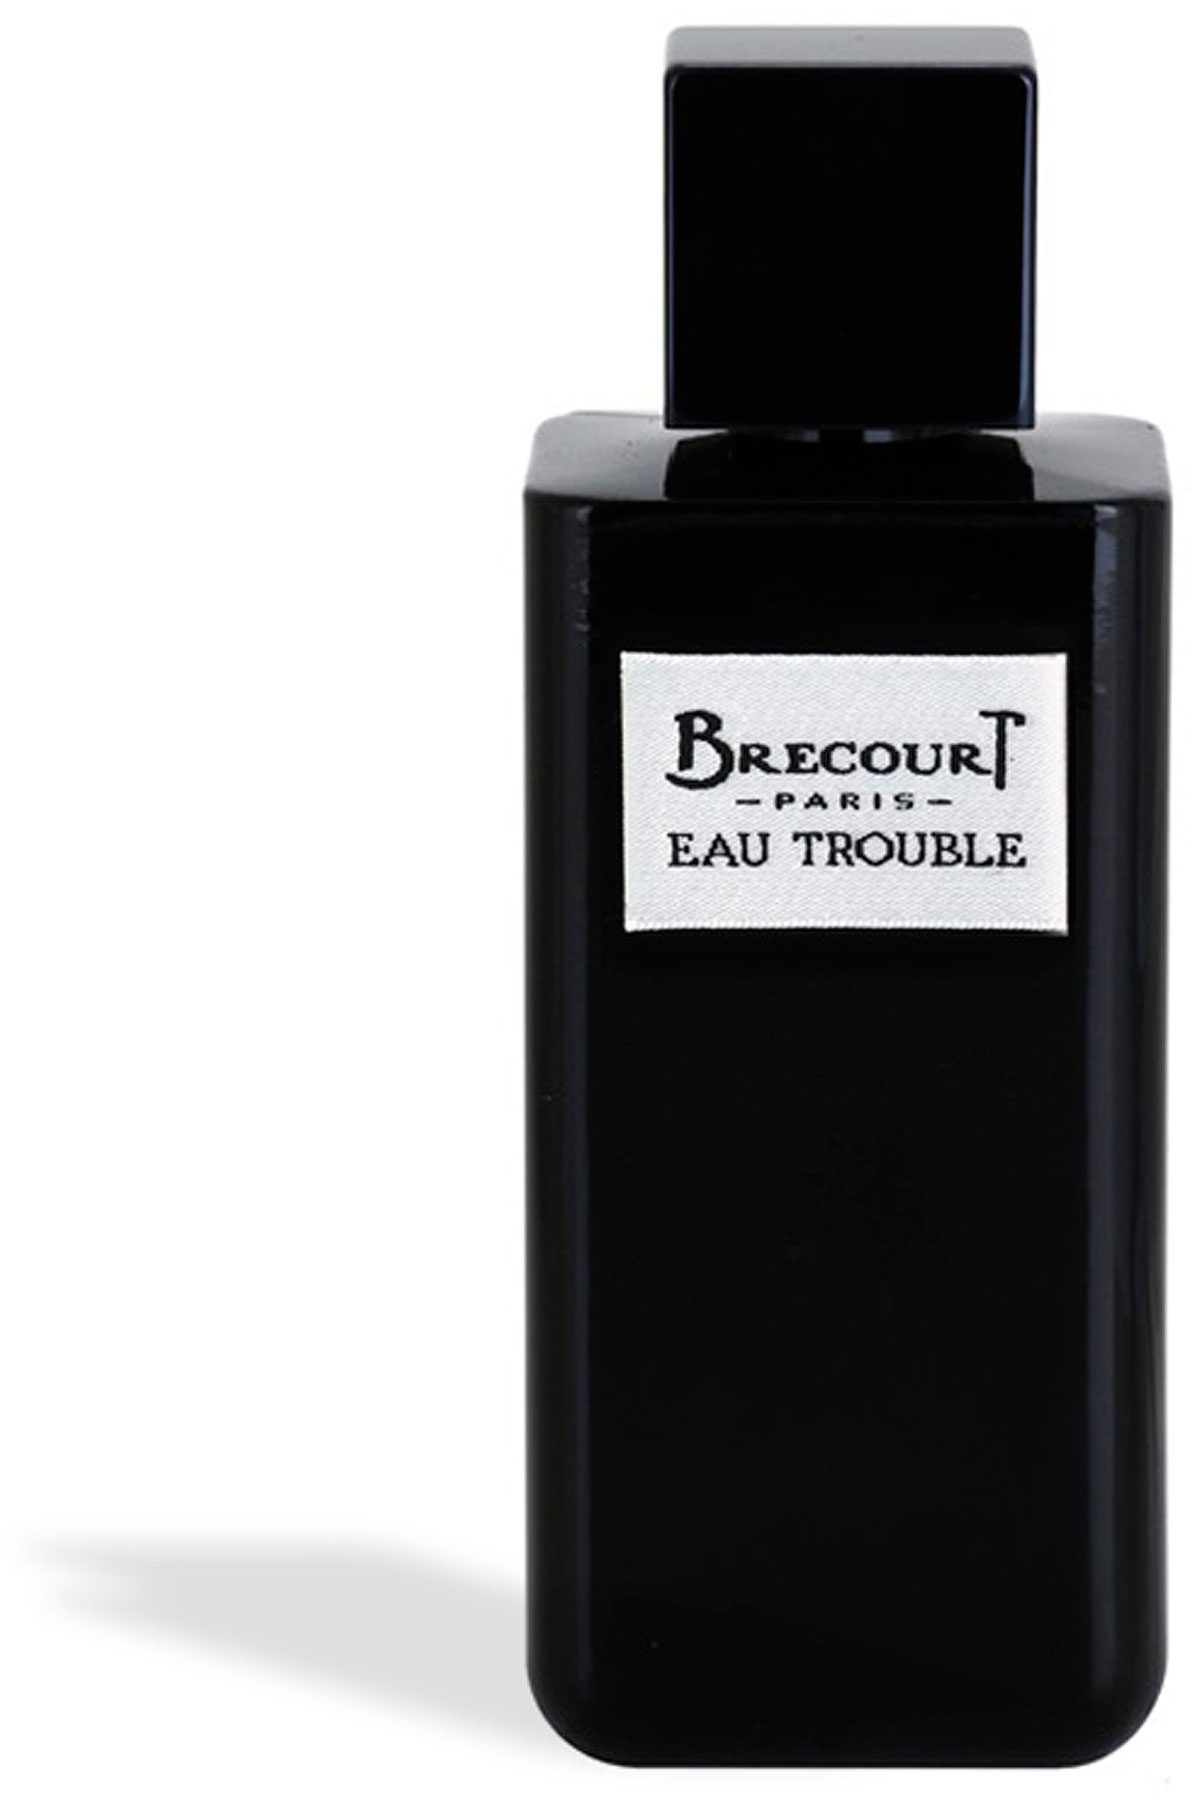 Brecourt Fragrances for Women, Eau Trouble - Eau De Parfum - 100 Ml, 2019, 100 ml